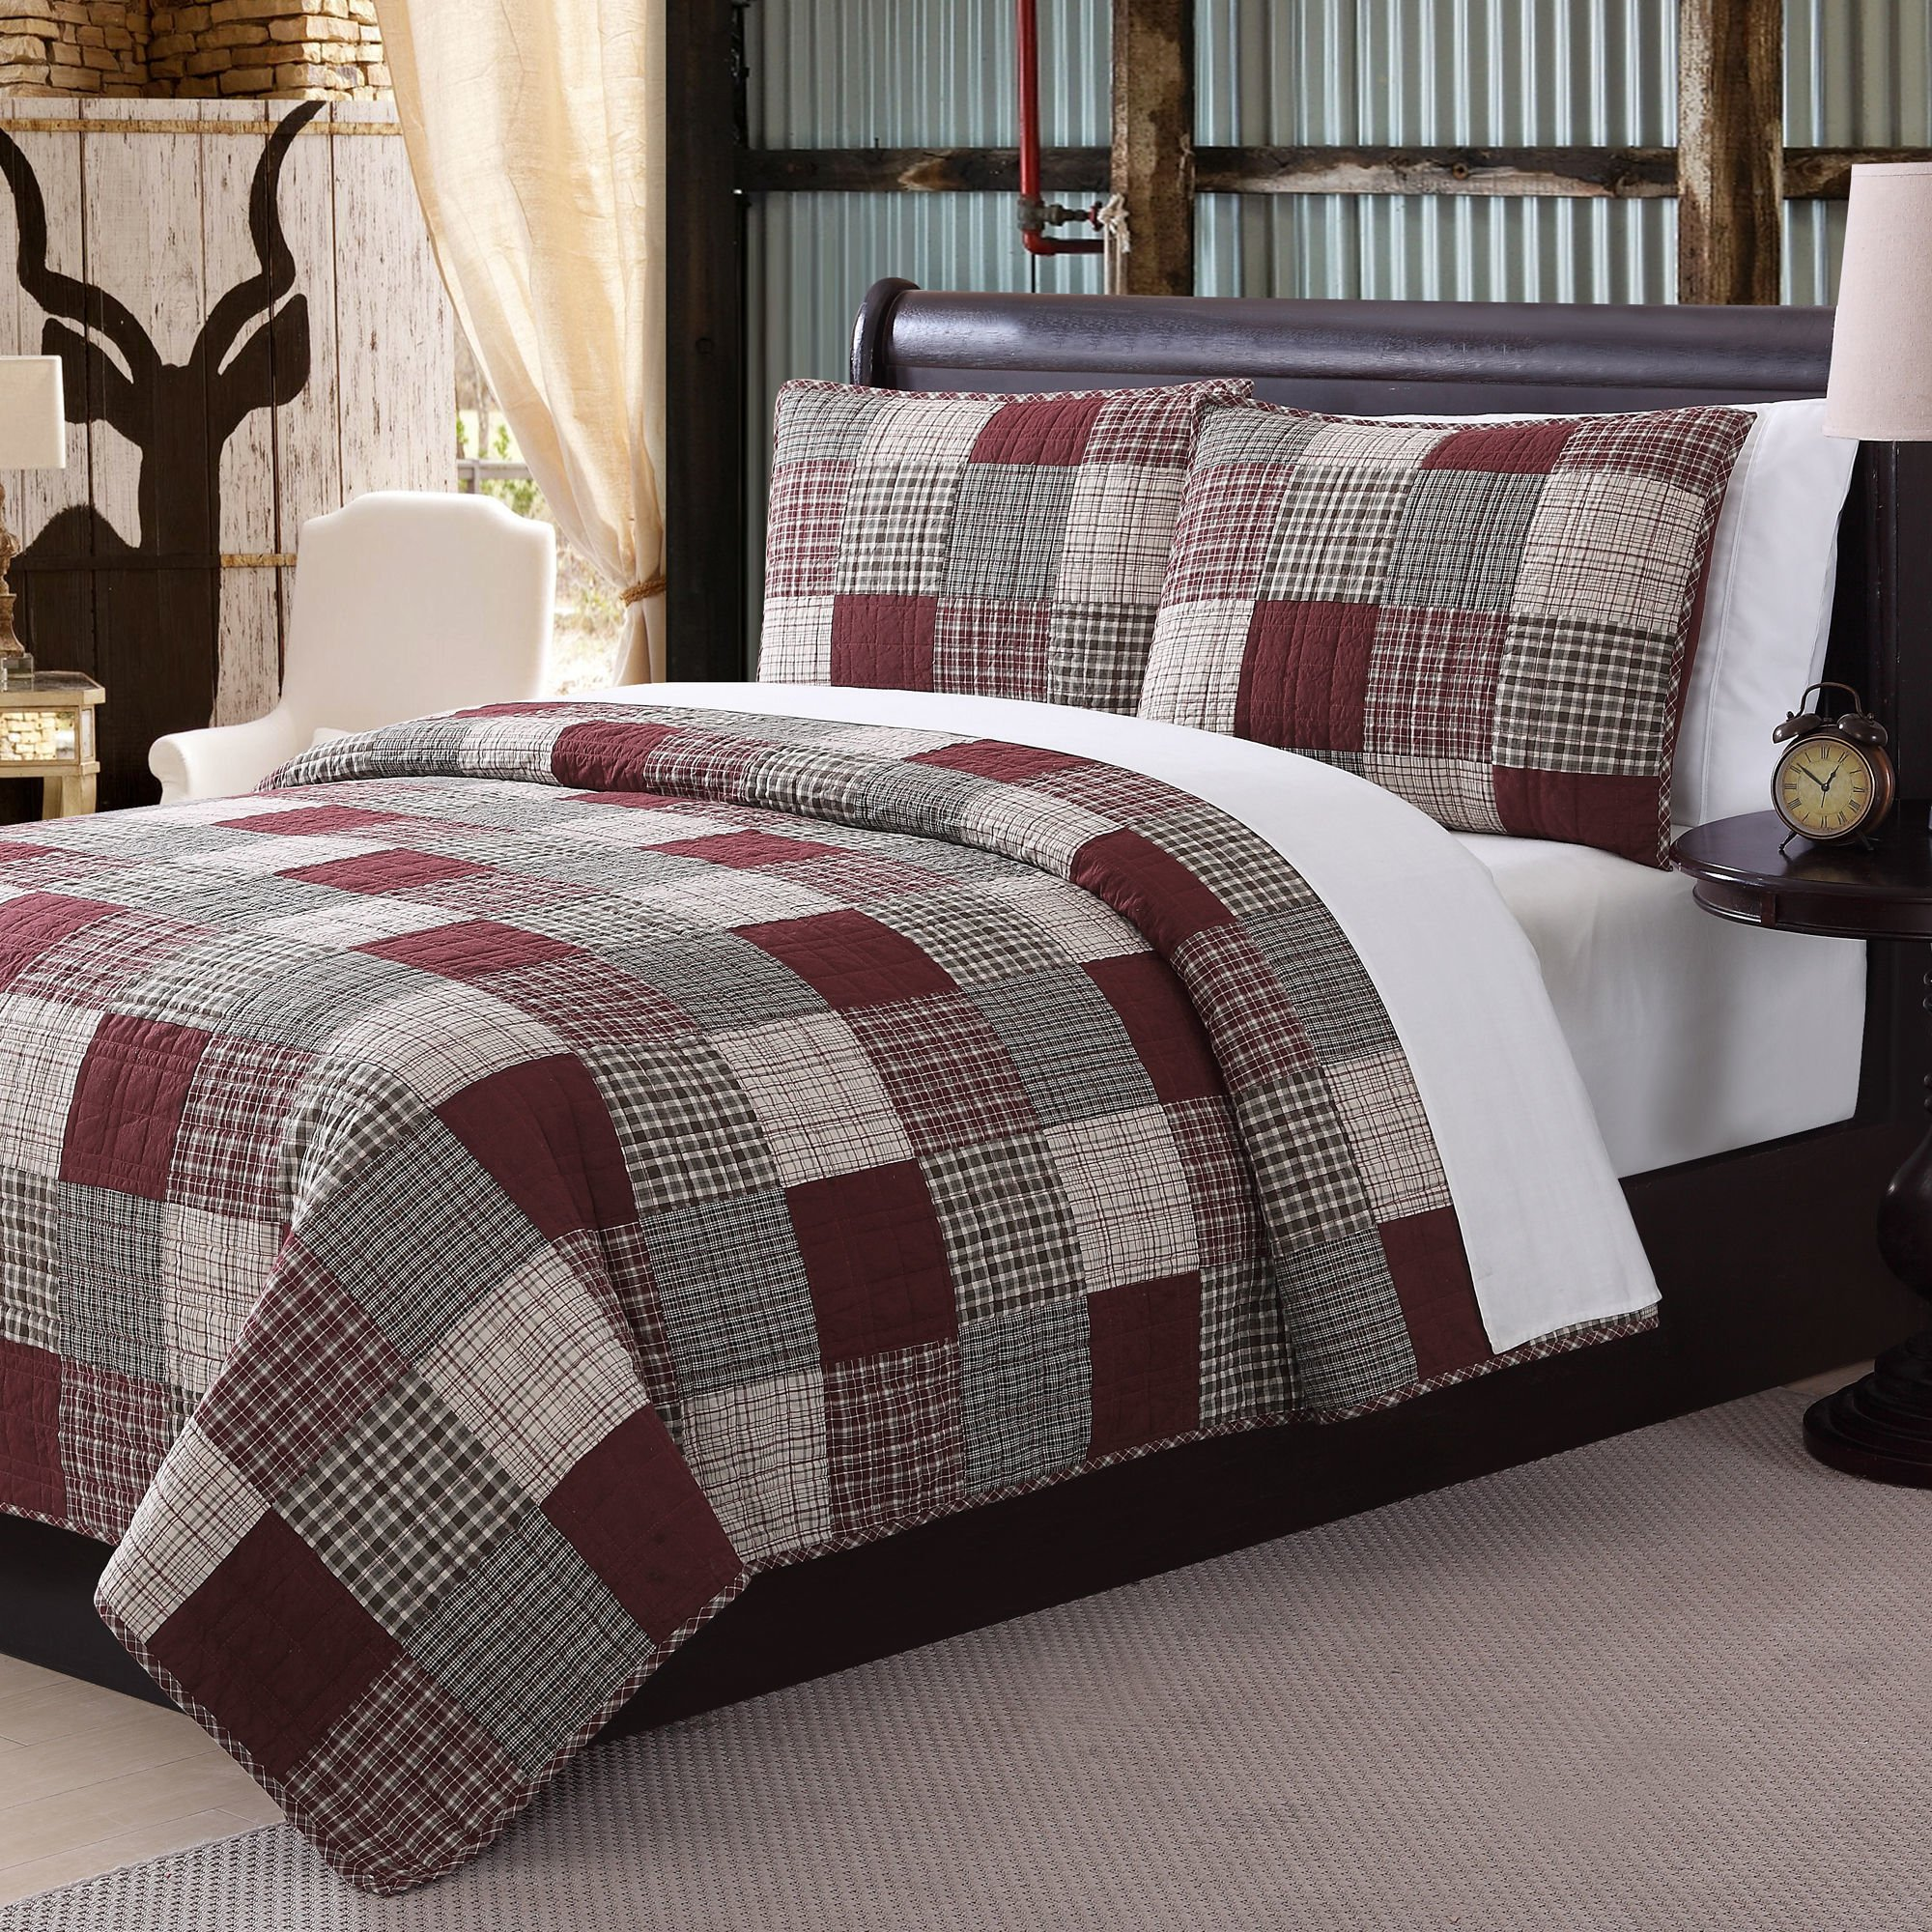 OVS 3 Piece Rustic Red Grey Tan Queen Quilt Set, Plaid Tartan Patchwork Themed Bedding Cottage Cabin Country Vintage Western Lodge Square Block Burgundy Tan Beautiful Shabby Chic, Cotton, Polyester